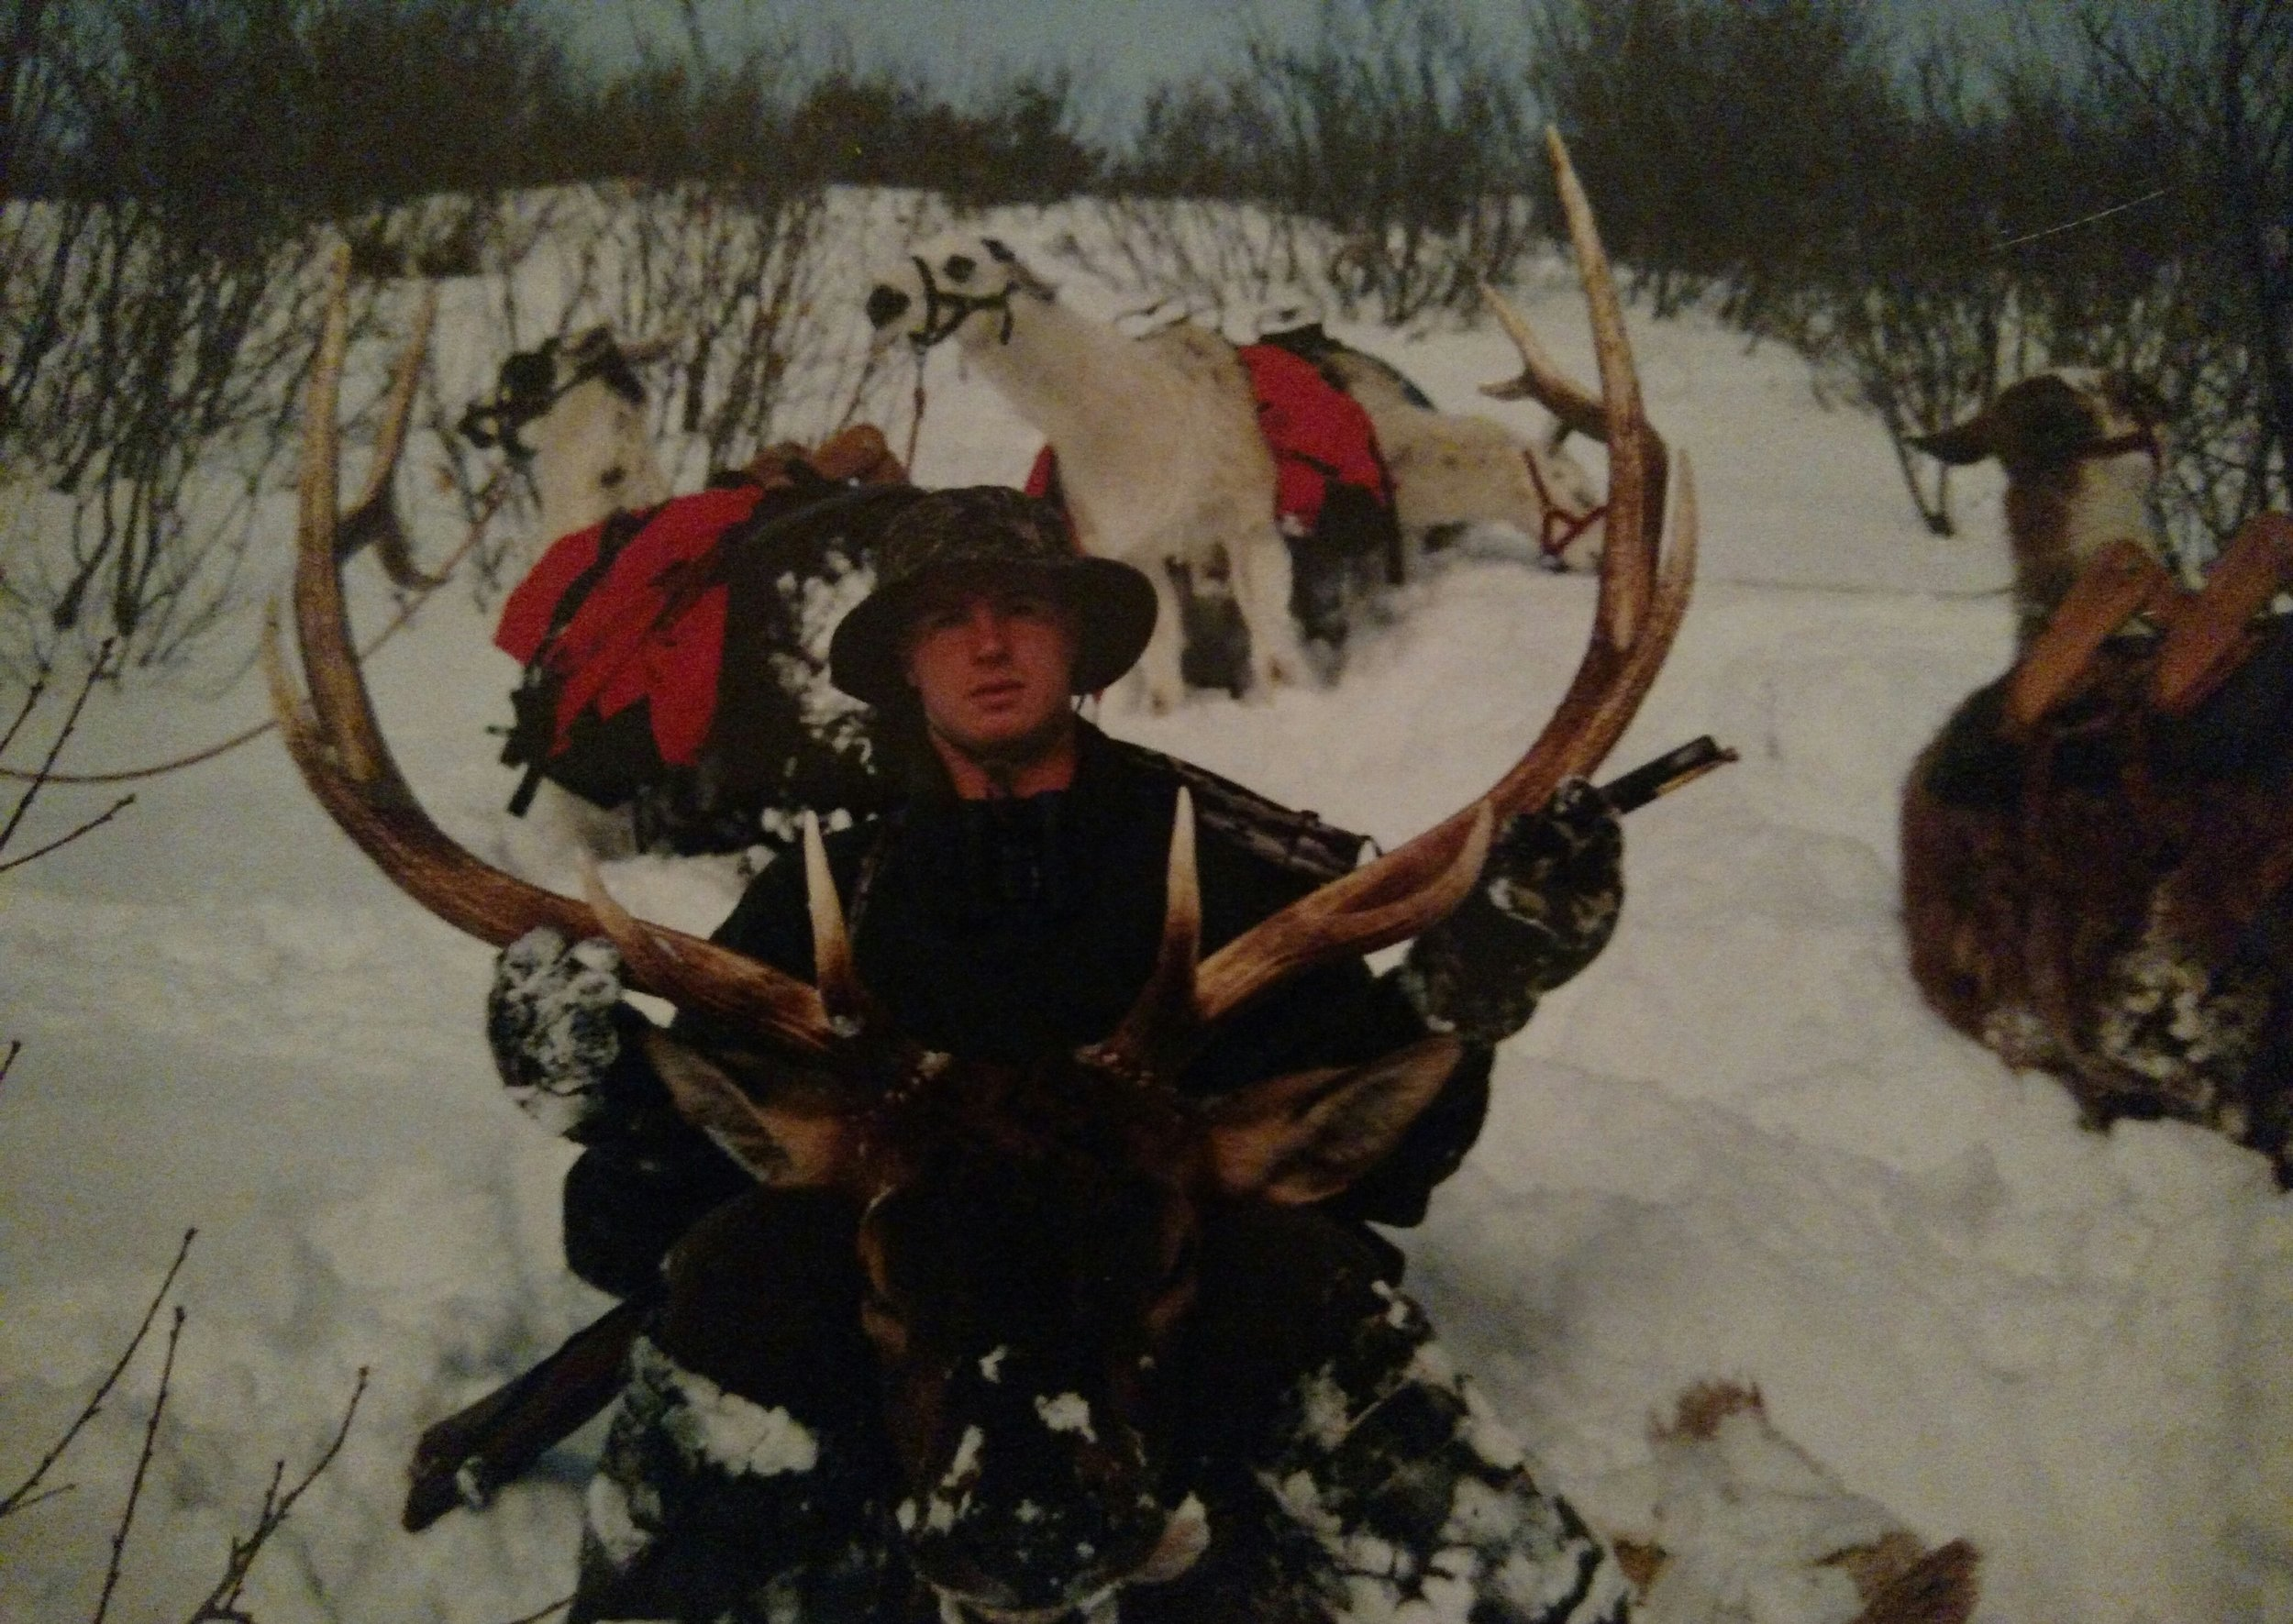 Idaho Elk Hunt Early 1990's...the good ole days of suck fests.